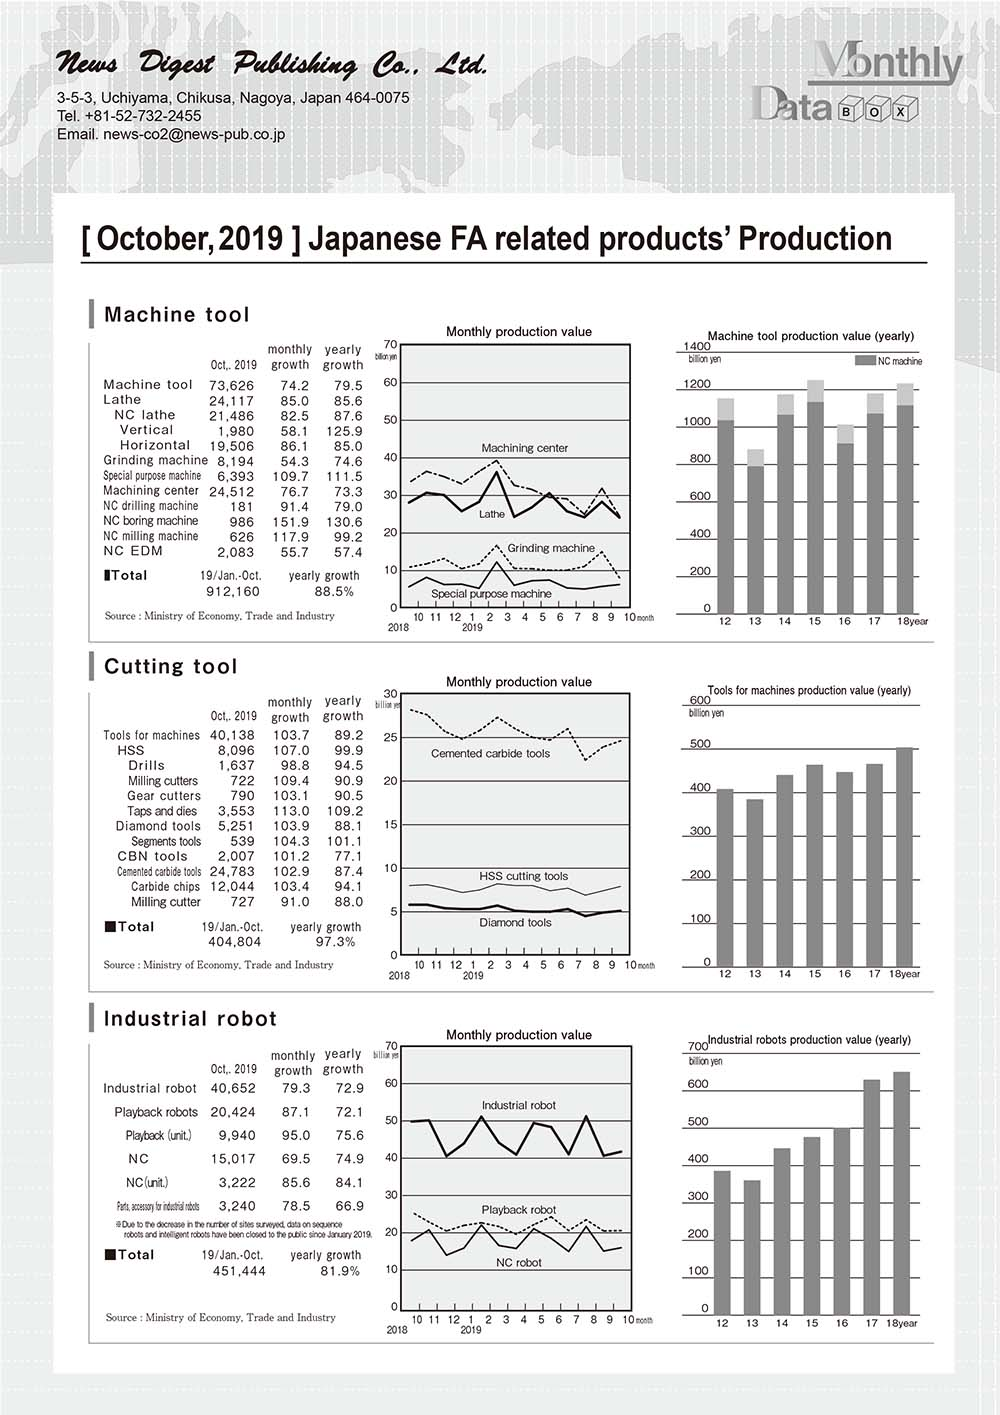 [October, 2019 ] Japanese FA related products' Production